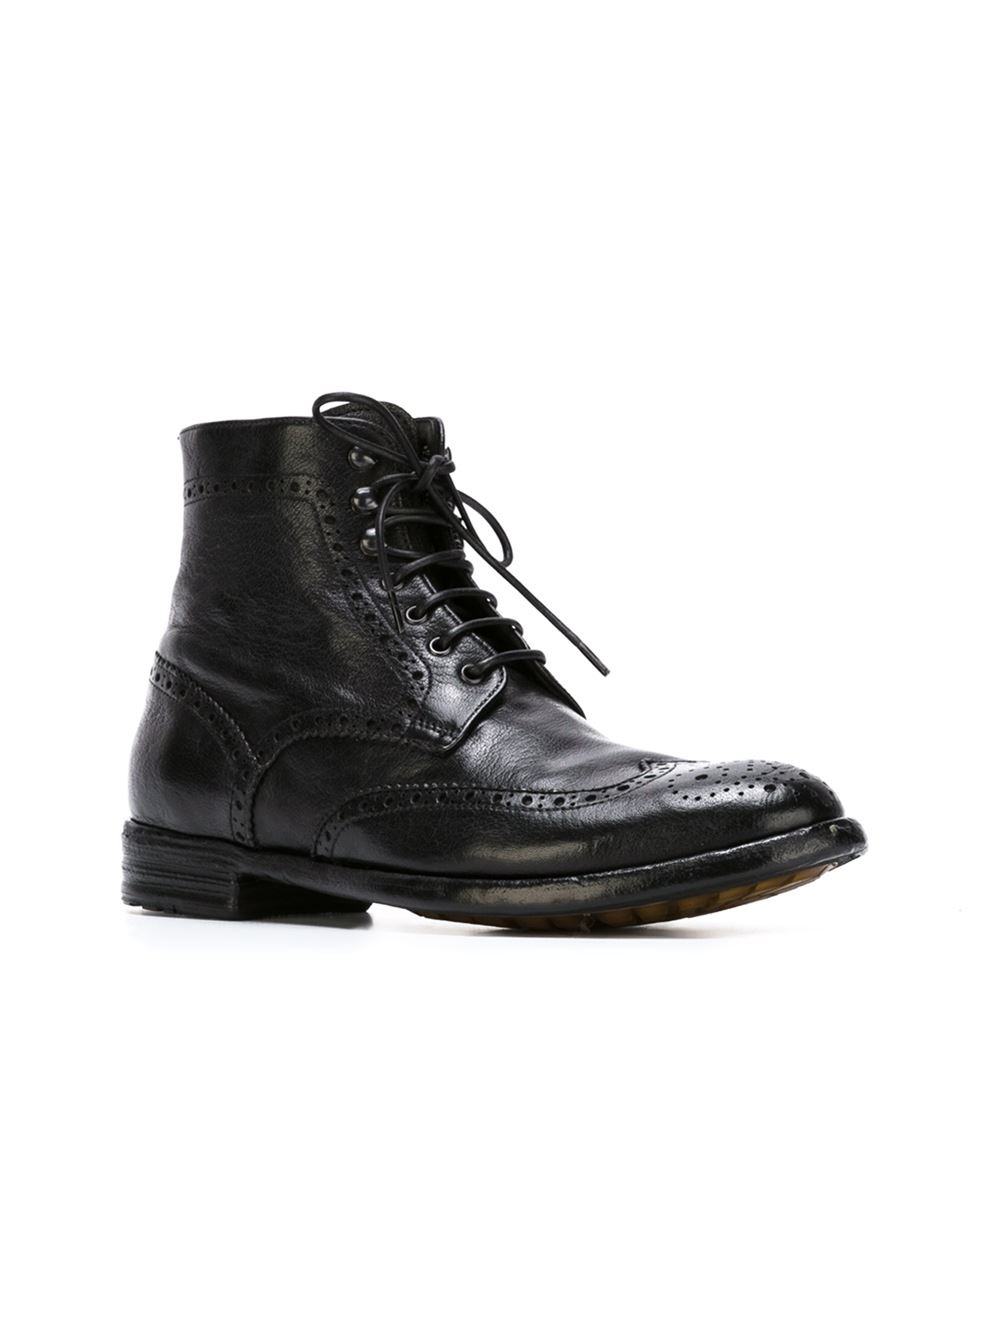 Simple Officine Creative Black Matte Leather Buckled Boots In Black | Lyst